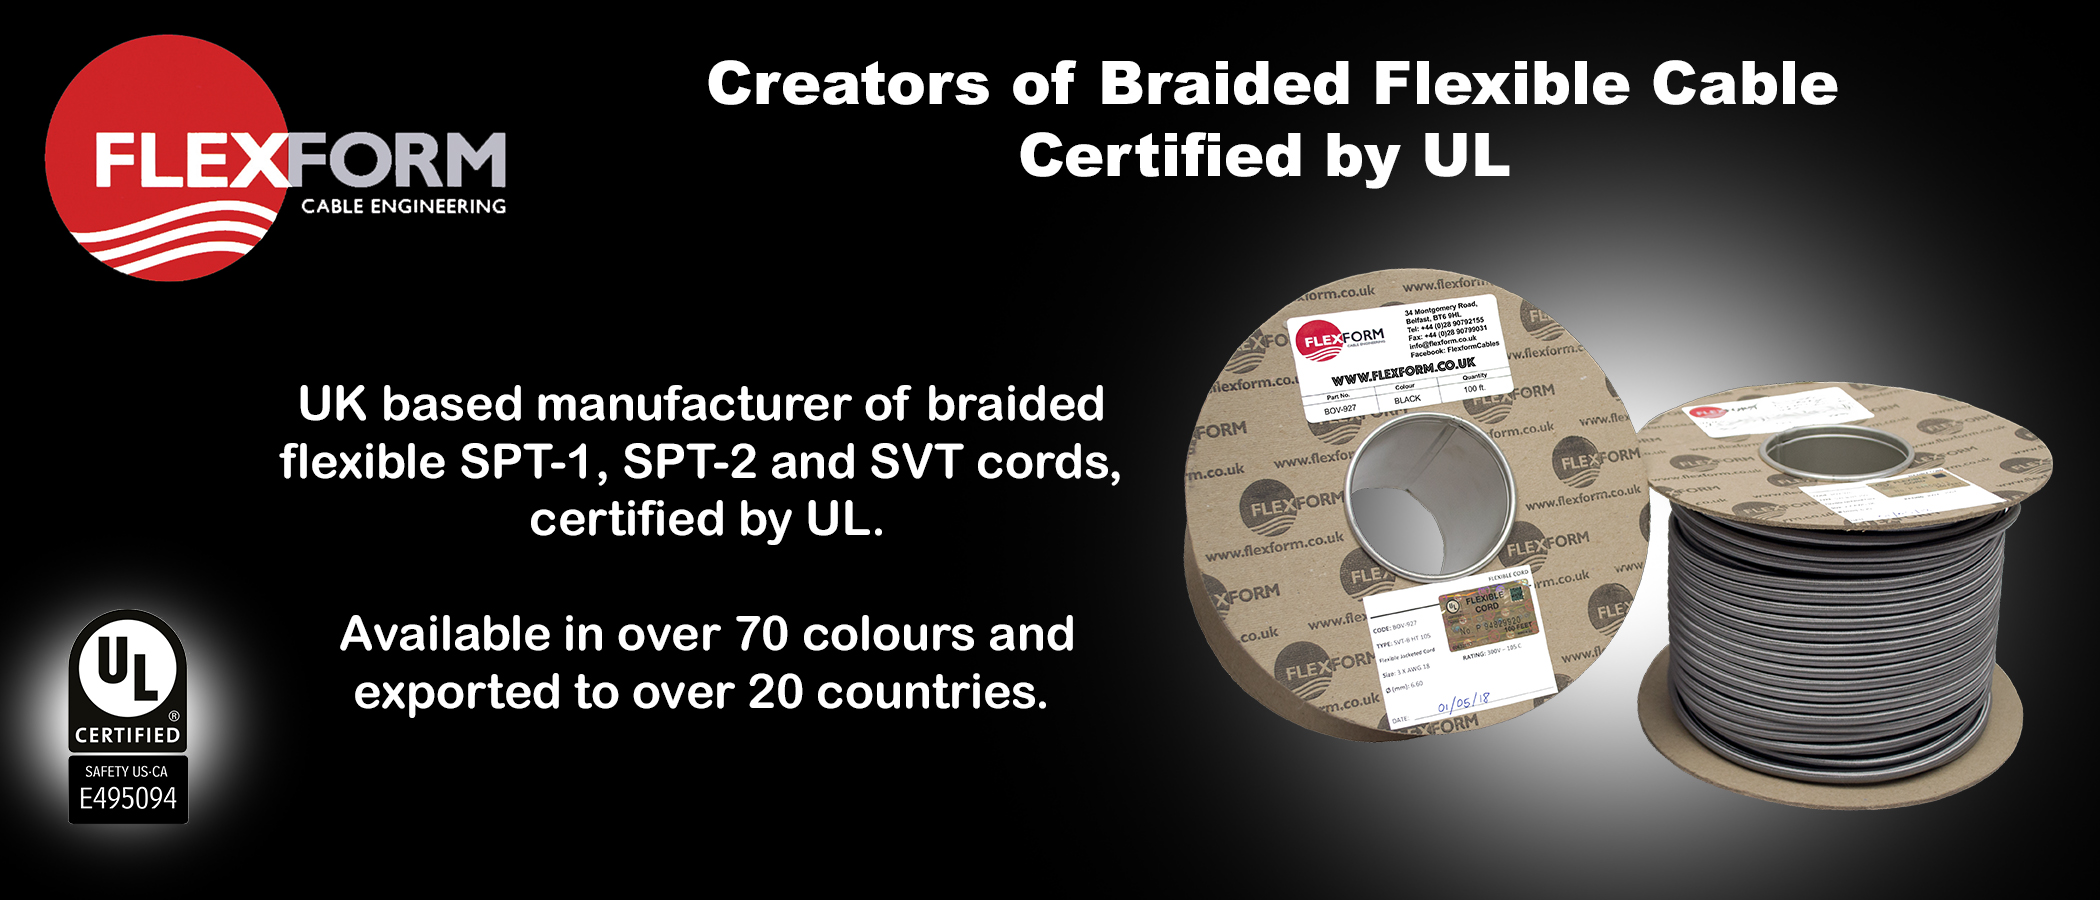 Flexform UL offering